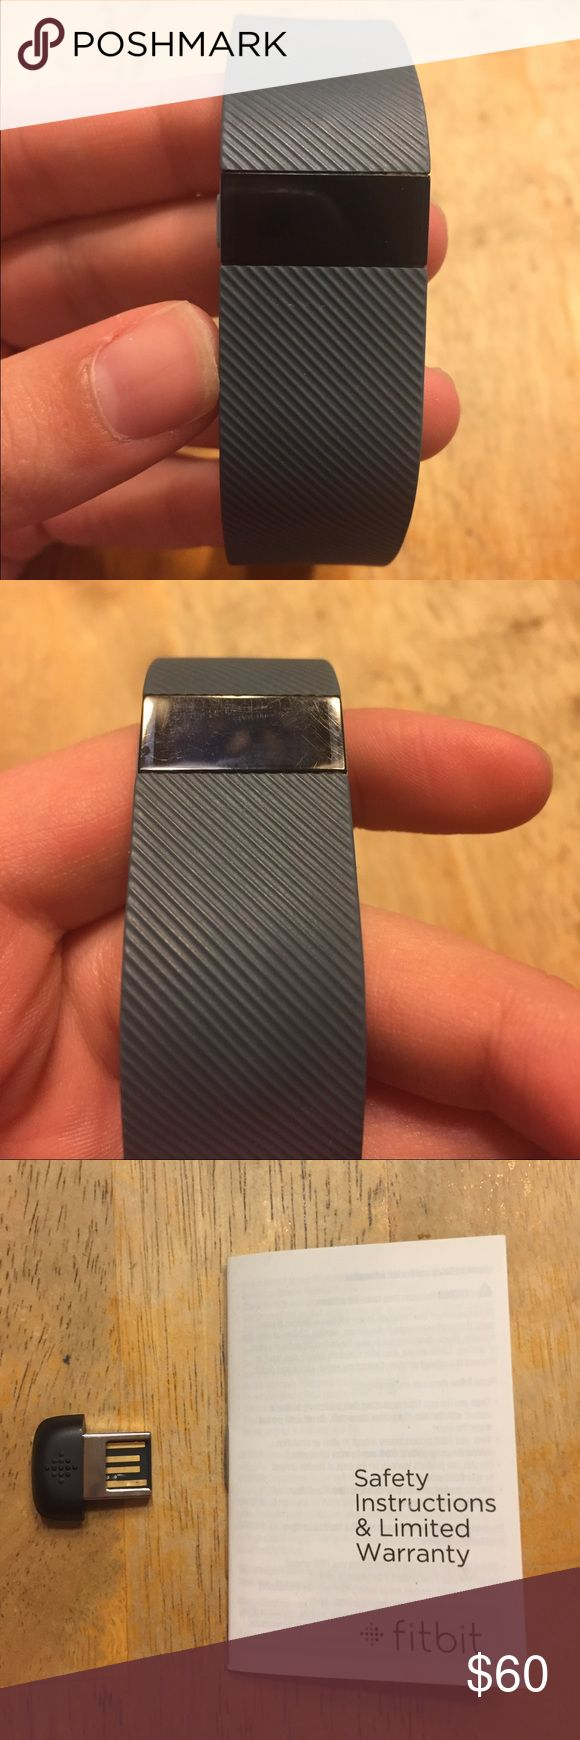 Fitbit Charge, Slate Grey, Large This is a Fitbit Charge (NOT an HR!) in the color Slate Grey and it is in size Large. It is in very good condition, and this is because it wasn't used for very long. It does have scratches on the screen but nothing too noticeable and the button works well. It comes with the wireless sync dongle and the manual, but no charger because it got lost. It no longer has the 1 year warranty since it was bought over a year ago. I'm sorry that I cant accept a trade, but…